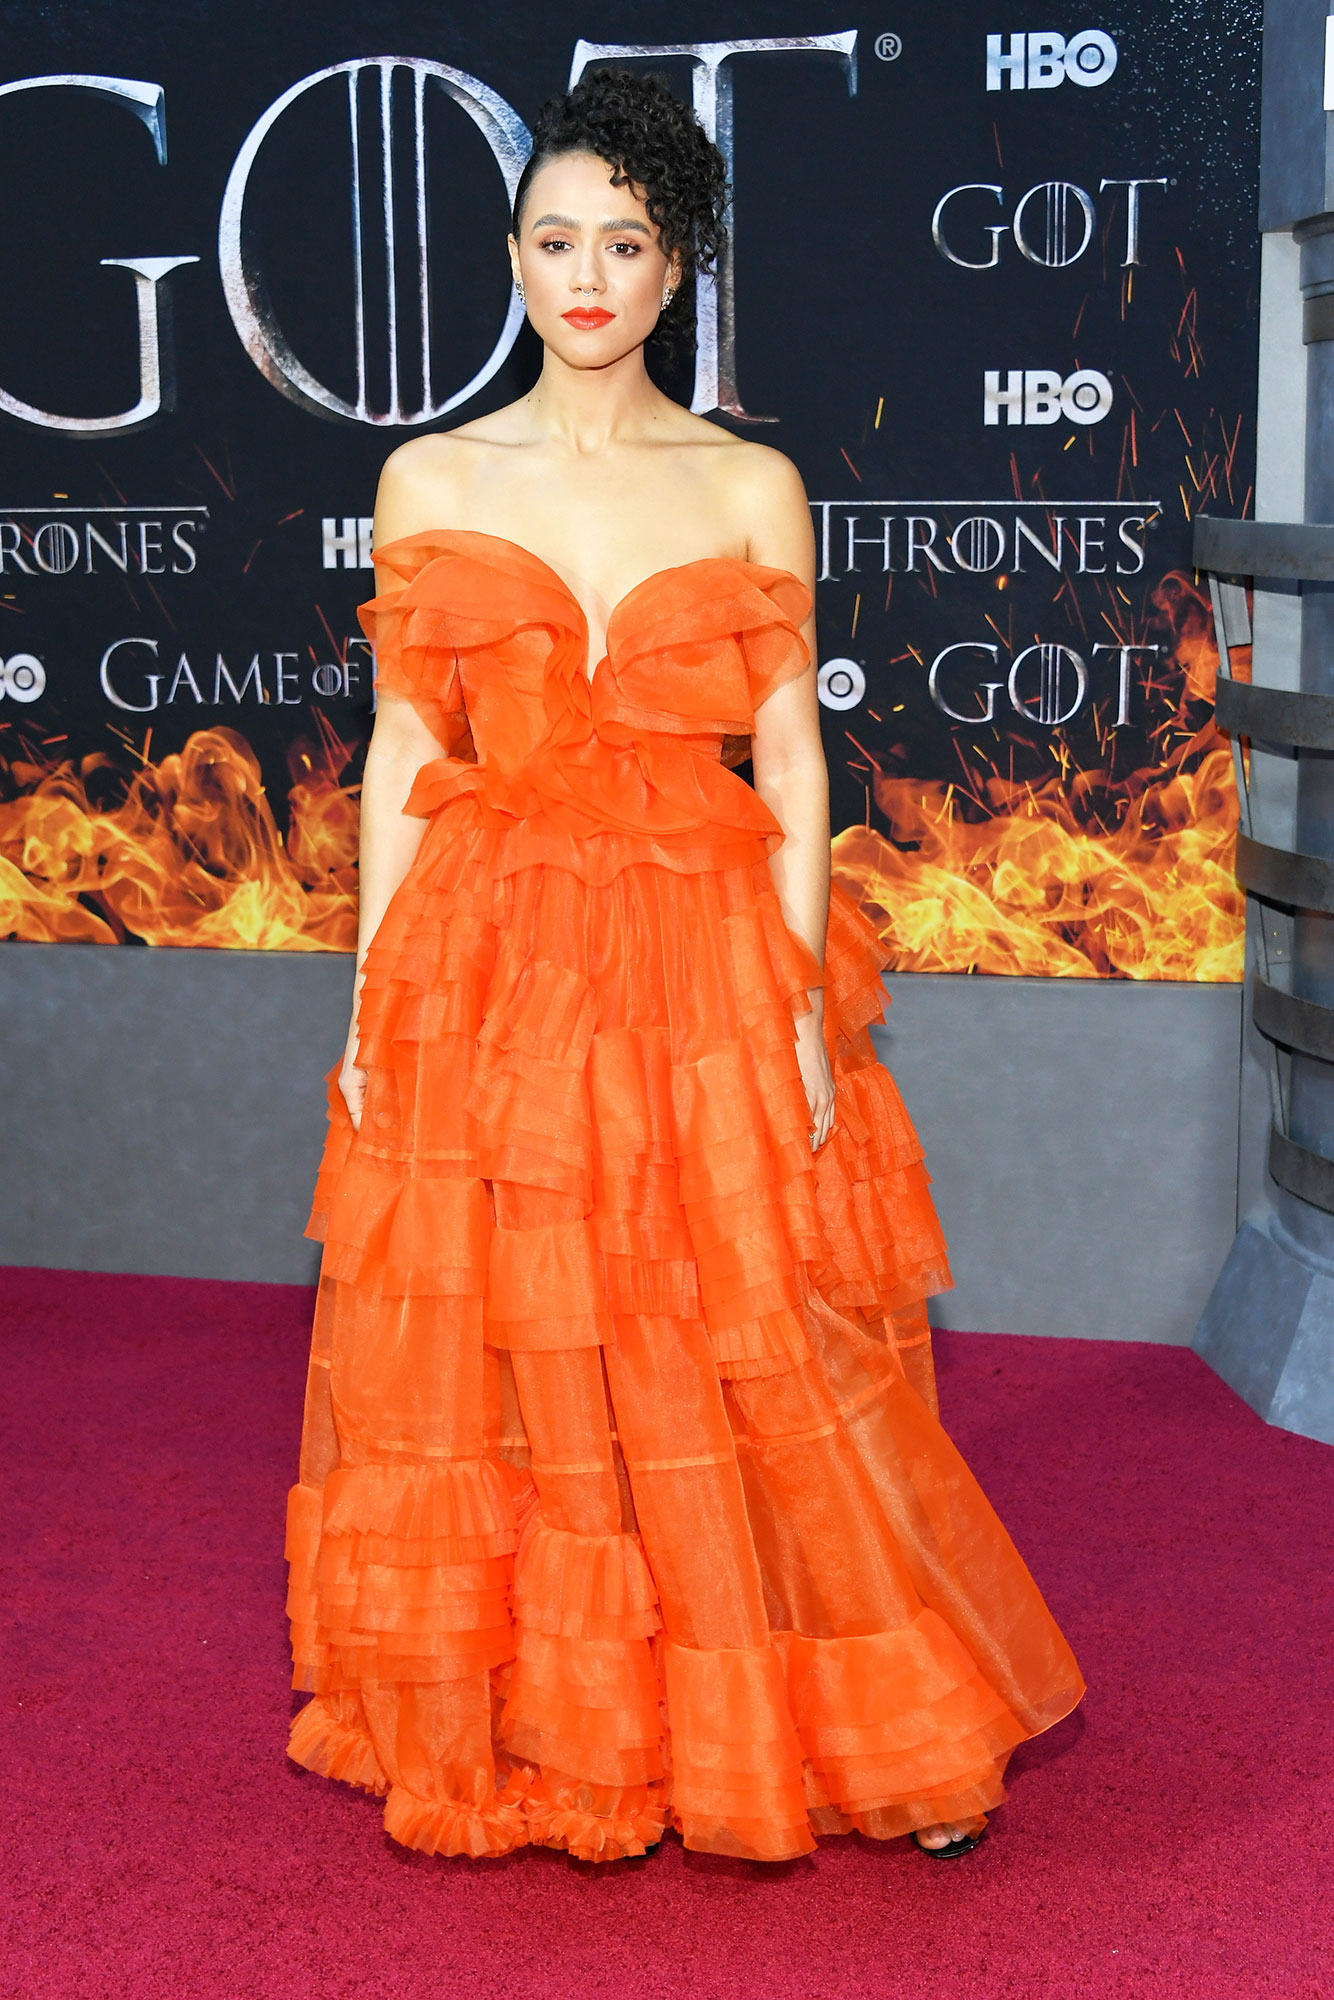 Nathalie Emmanuel game of thrones - Wearing a voluminous orange Ermanno Scervino gown and Jimmy Choo sandals.